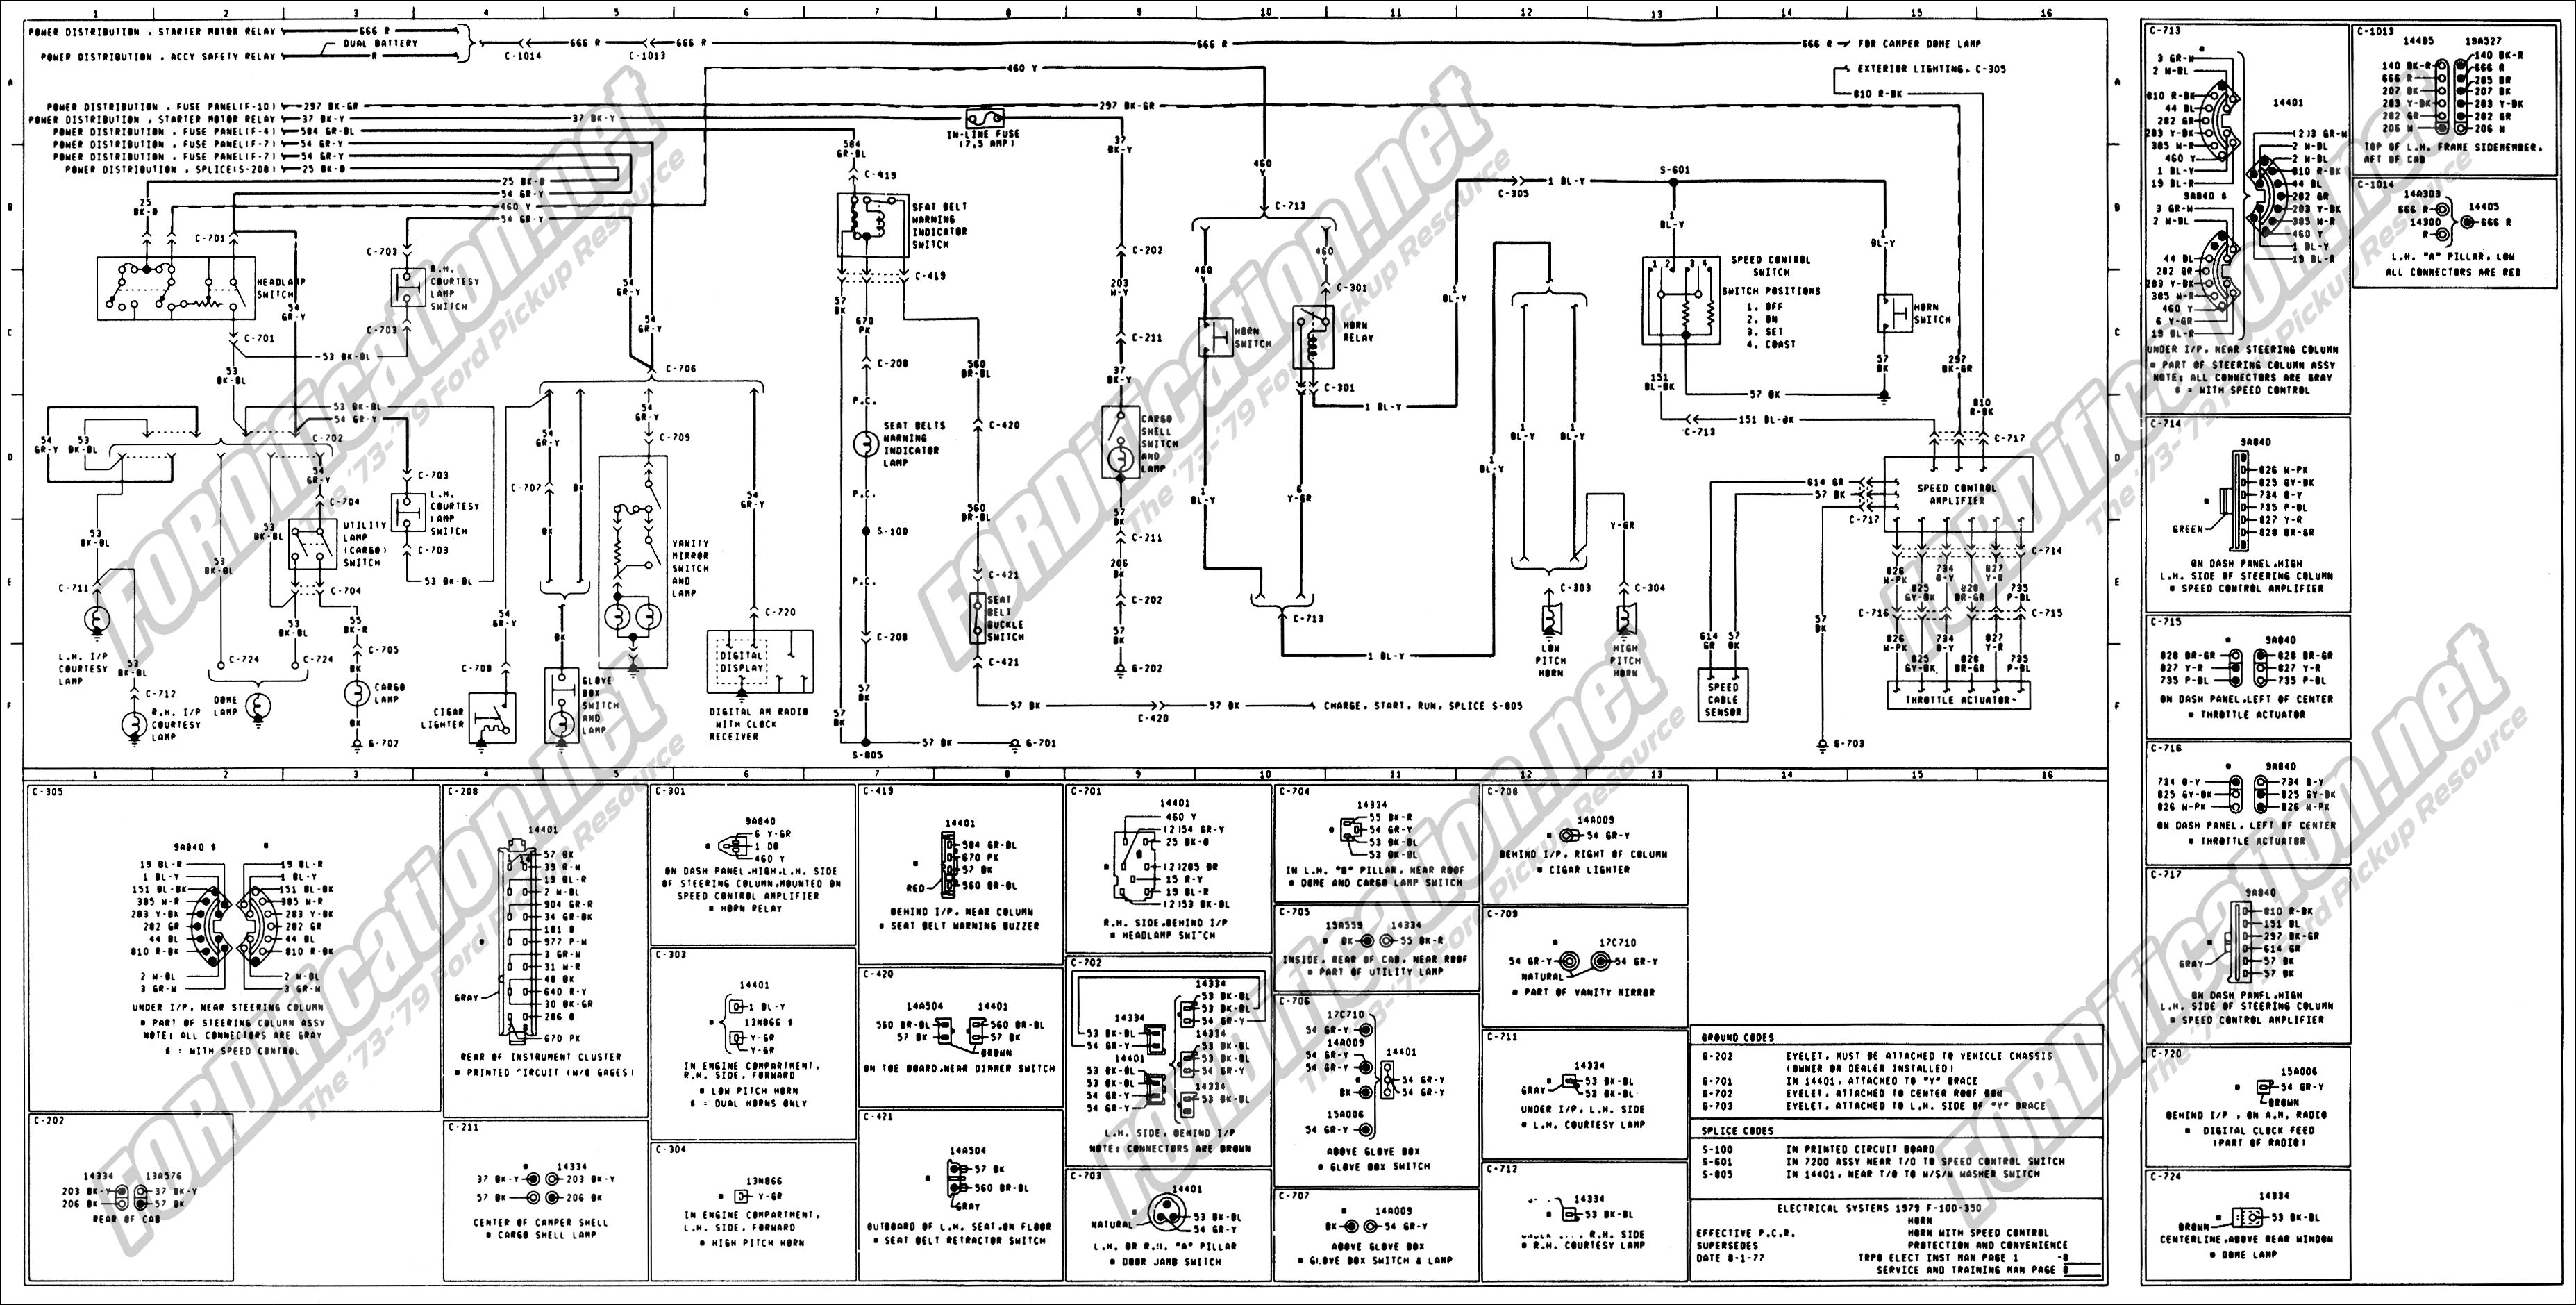 wiring_79master_8of9 wiring diagram ford f250 readingrat net wiring diagrams for 2017 ford trucks at webbmarketing.co